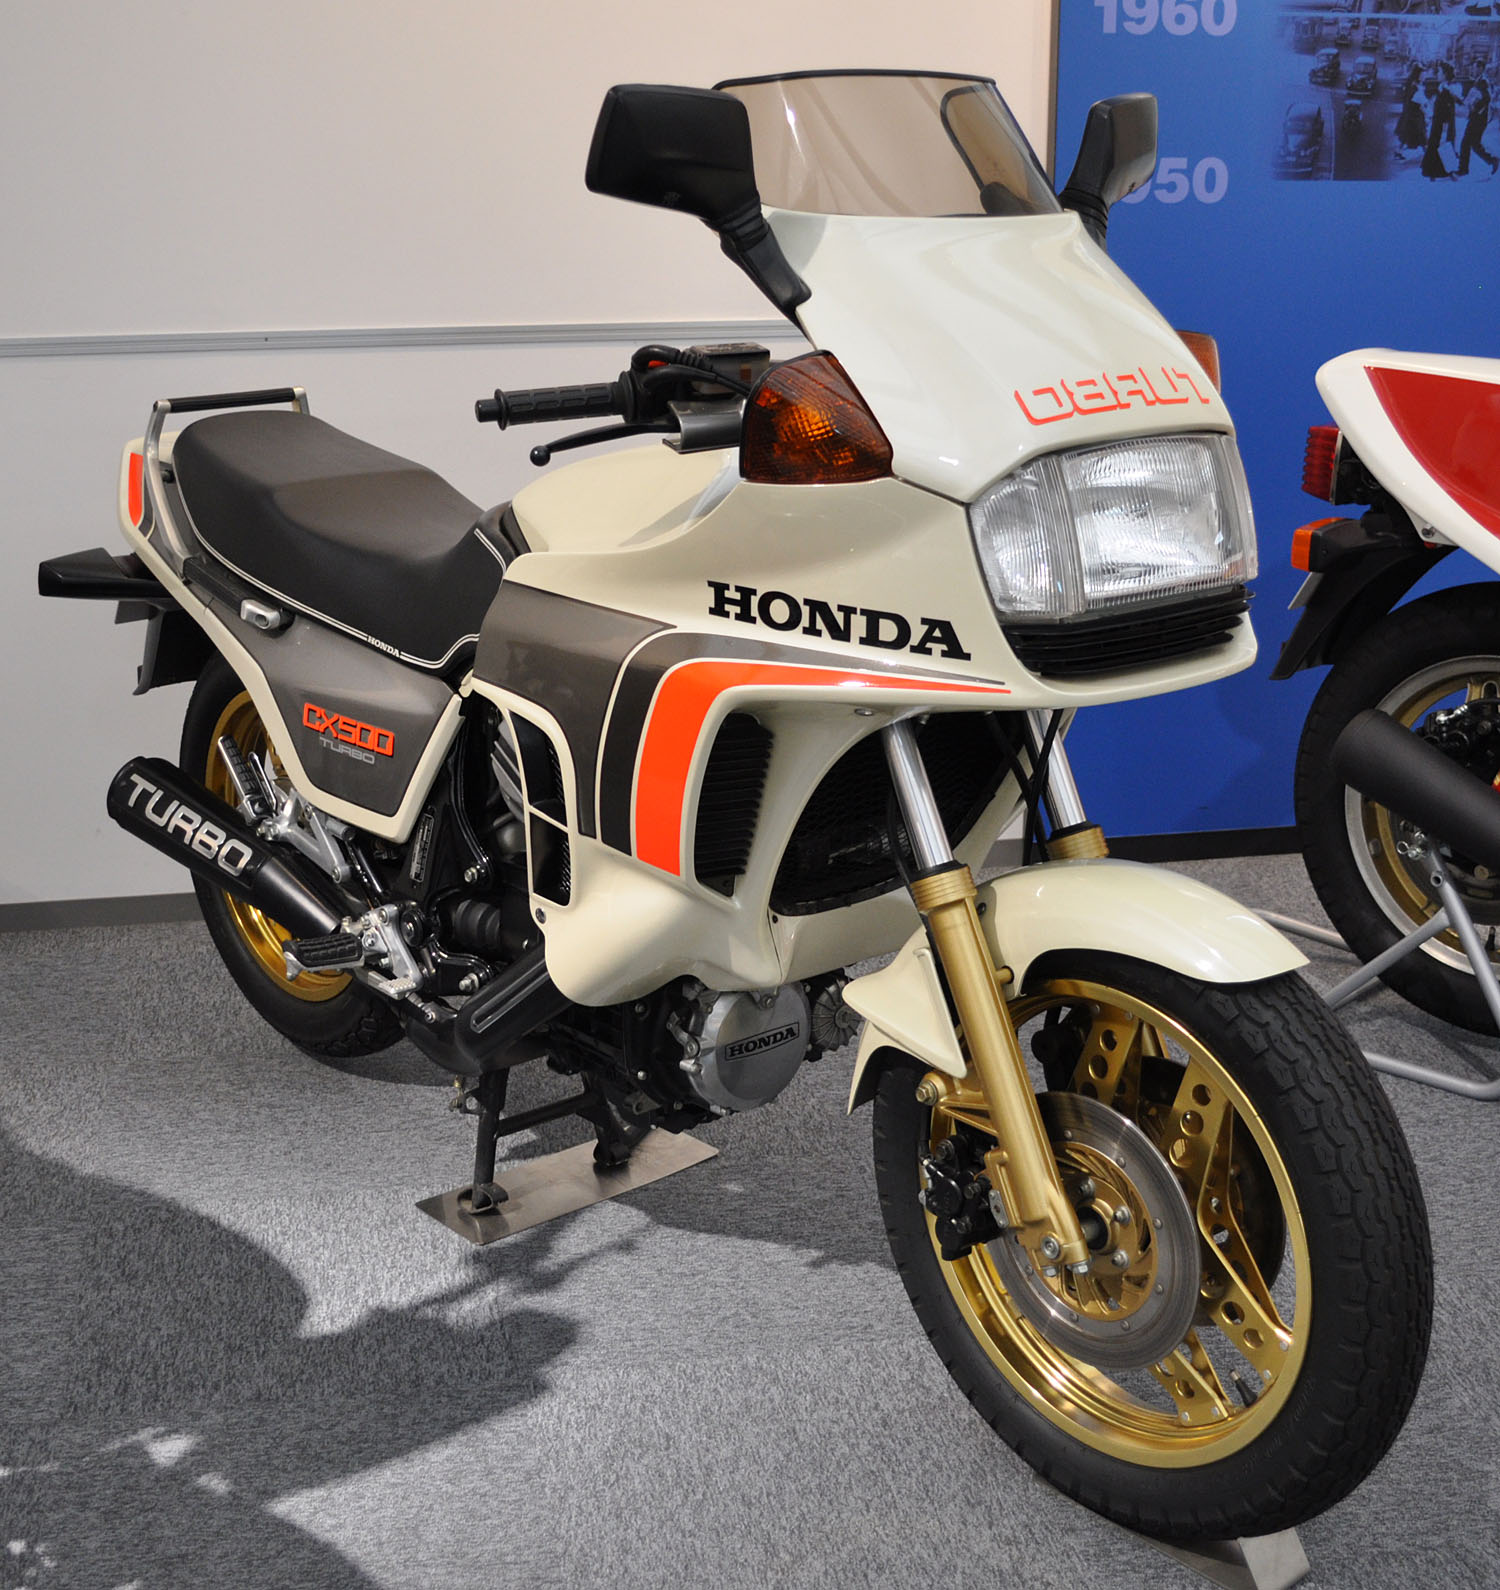 Honda CX650 Turbo 1985 #5